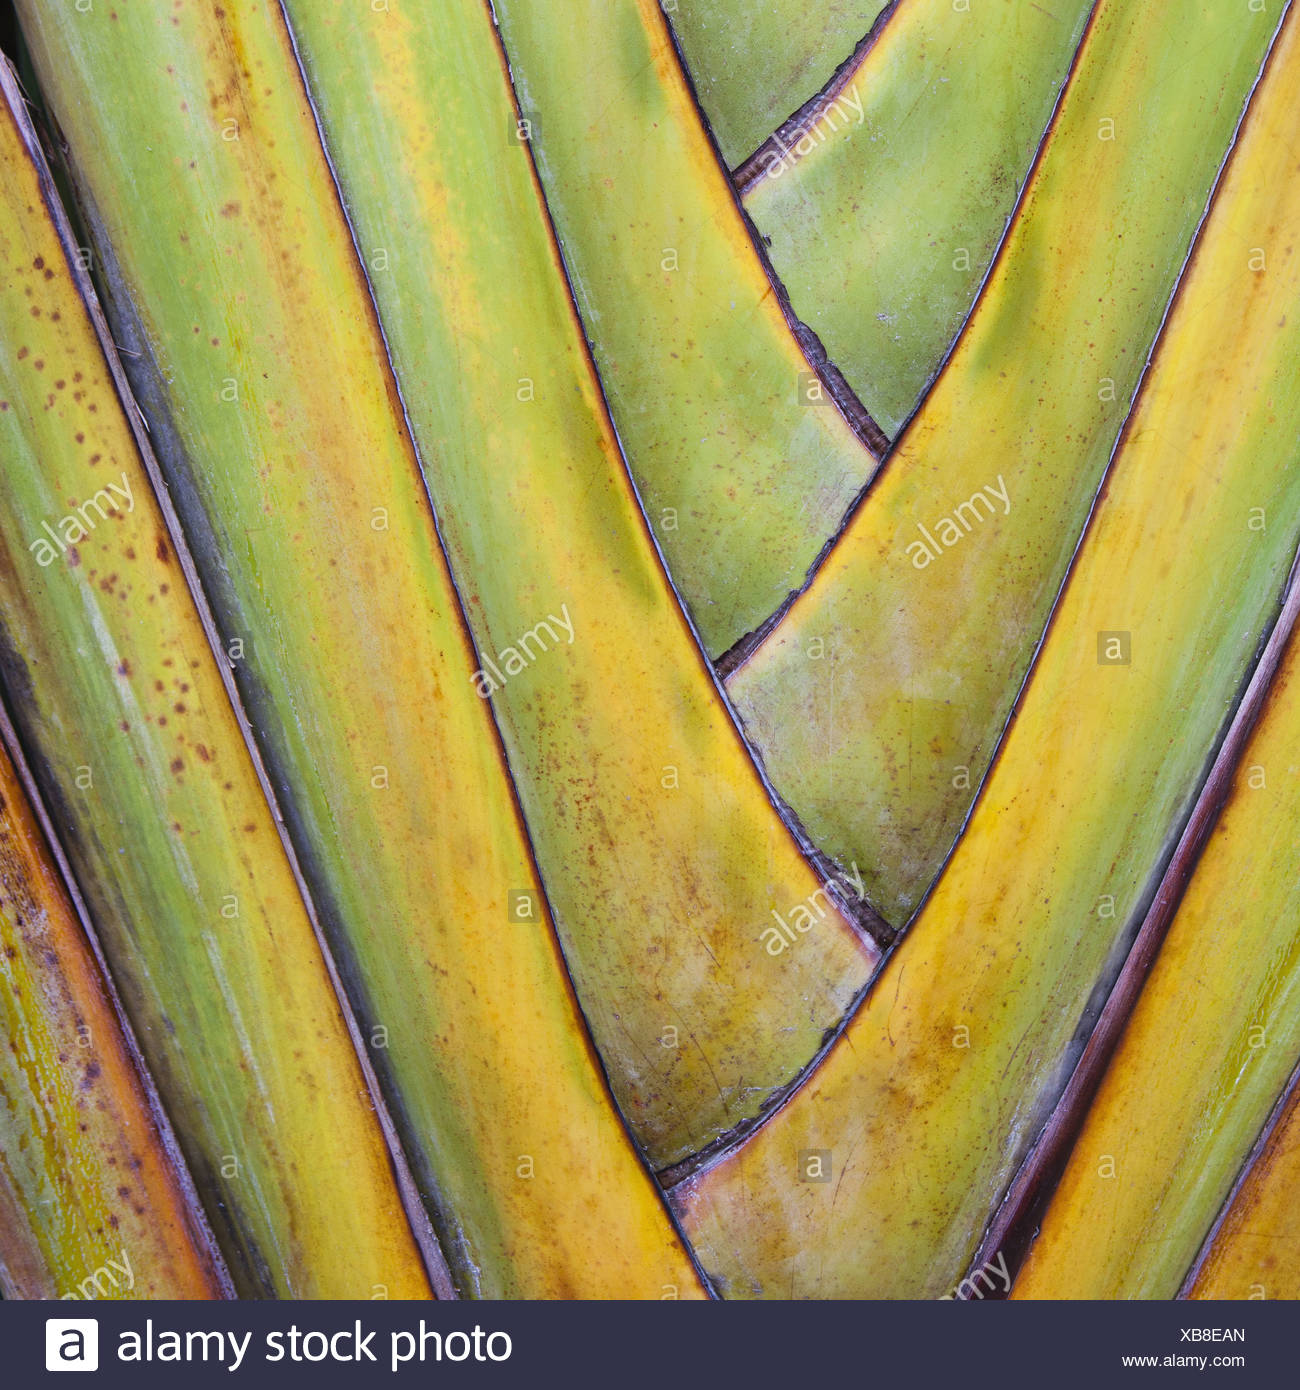 Tulum Mexico. Traveller's Palm or fan palm tree leaf stems - Stock Image